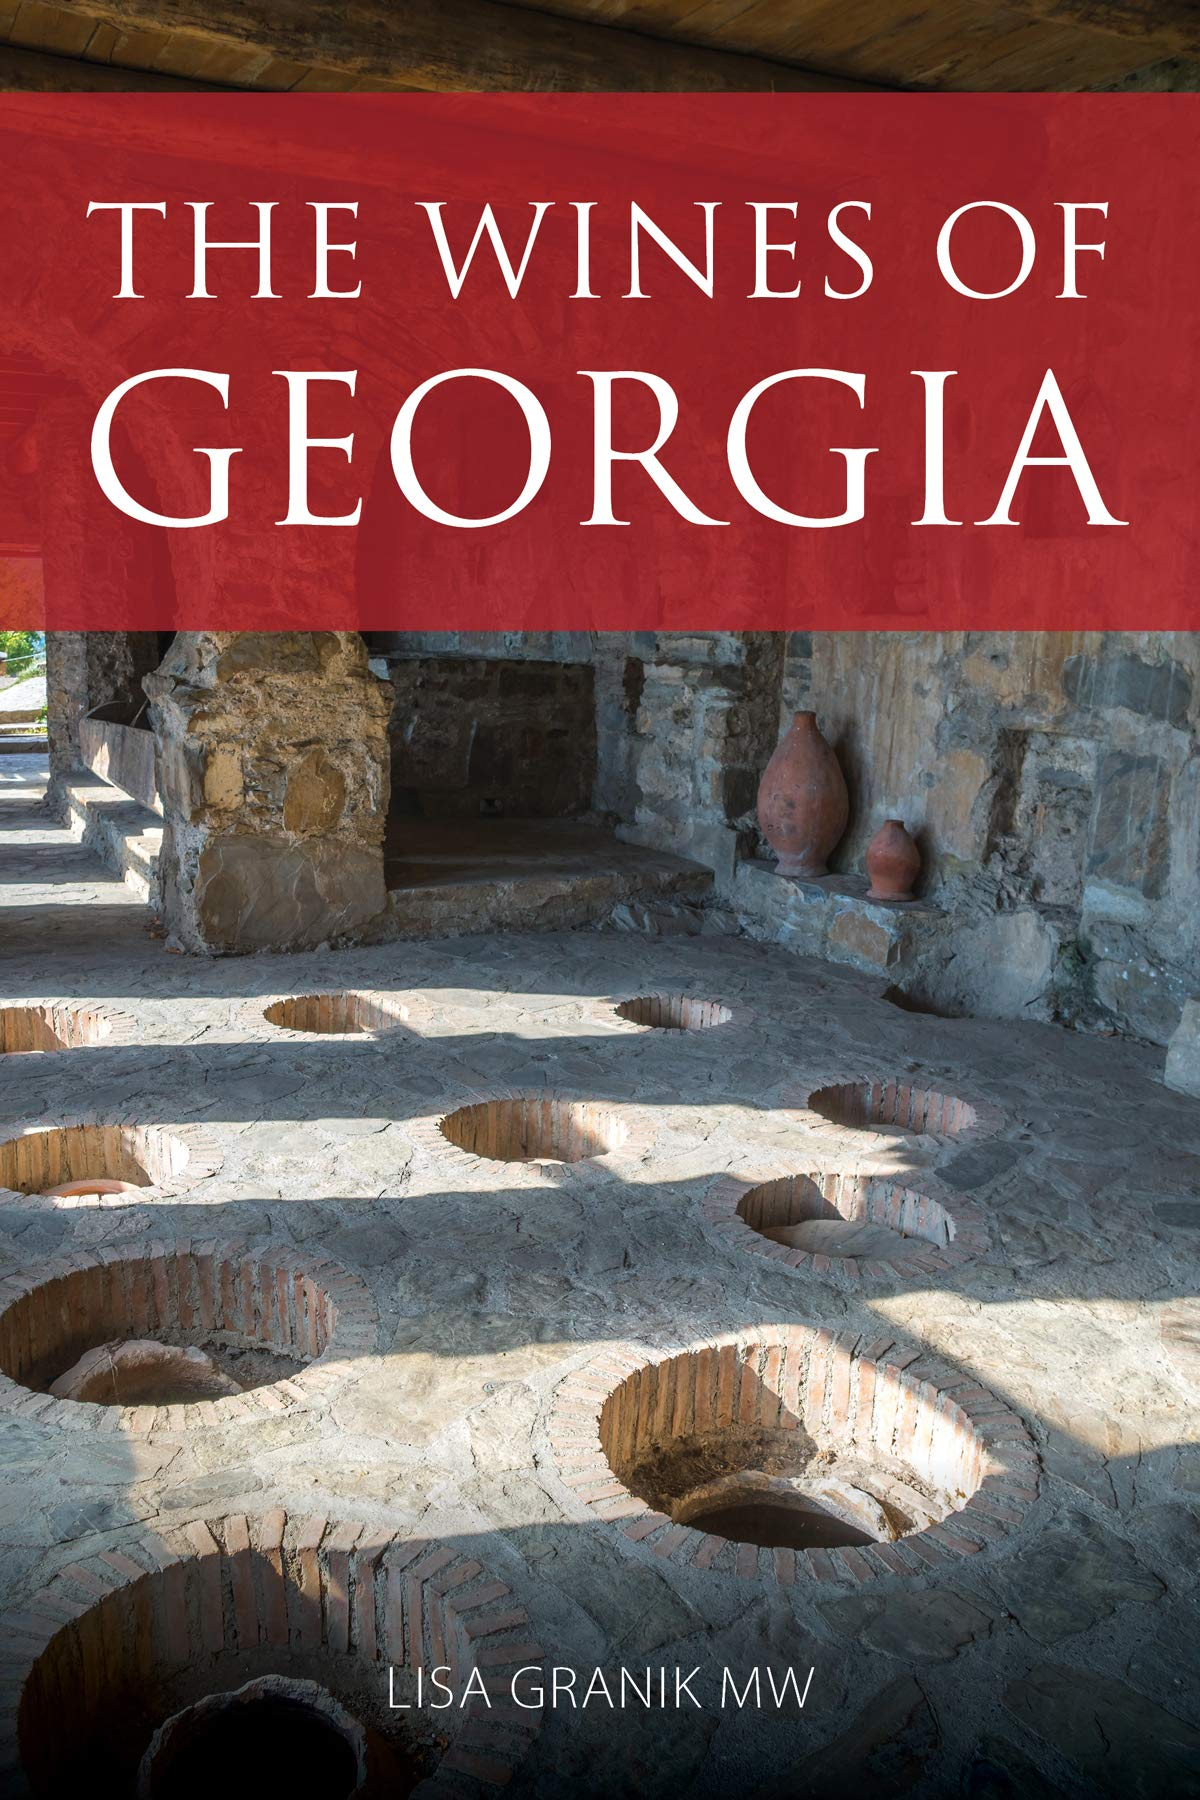 Image OfThe Wines Of Georgia